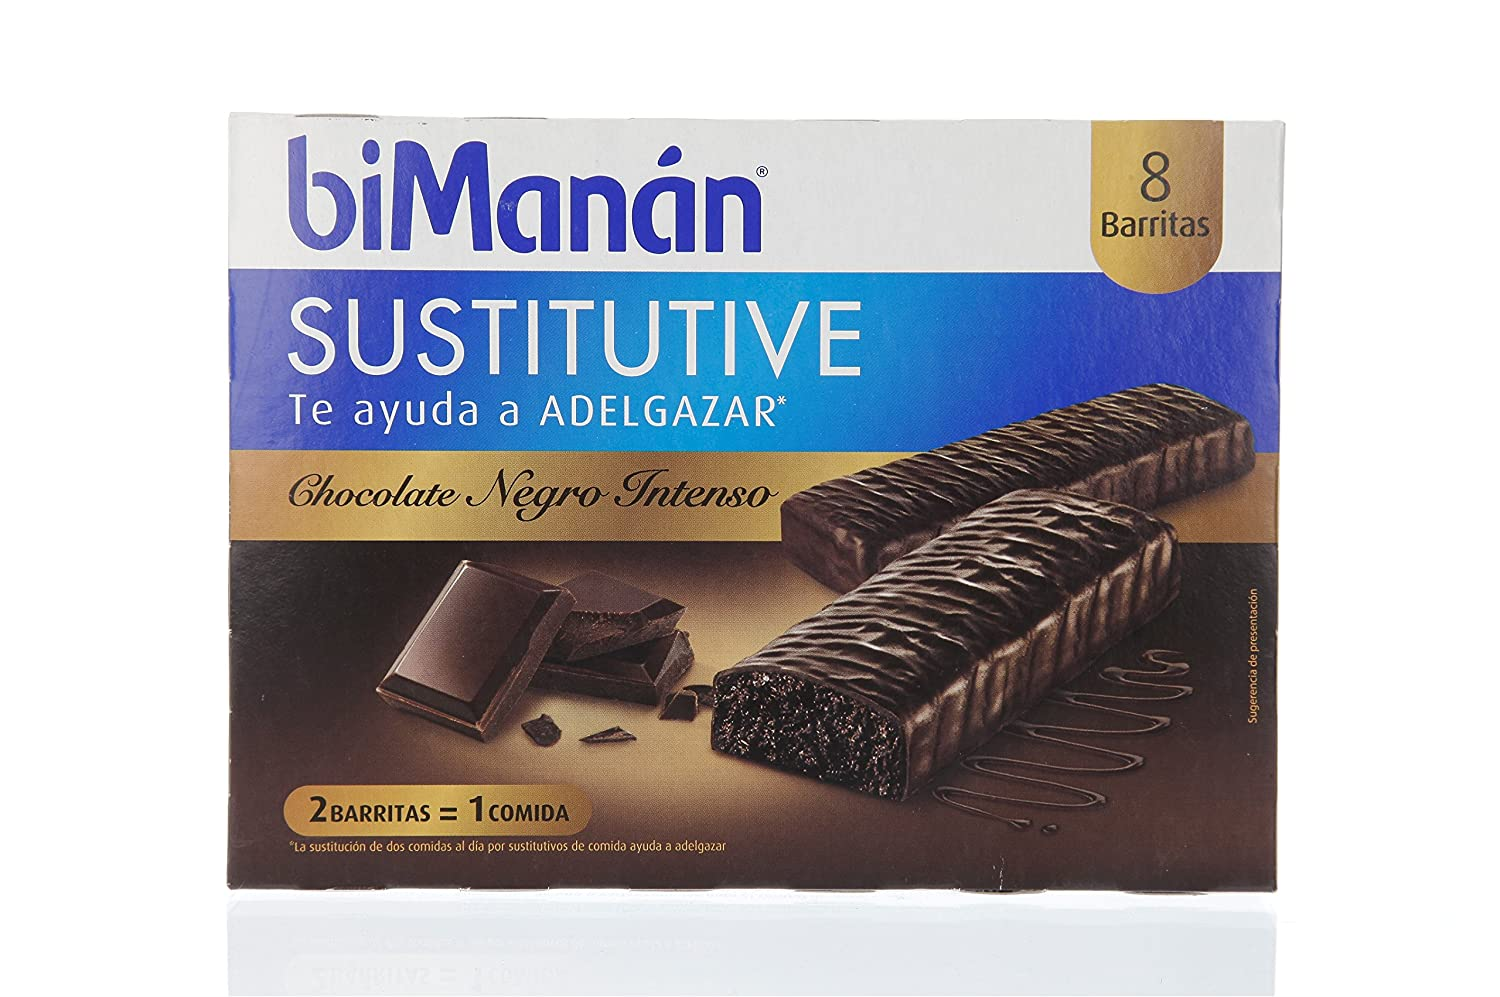 Bimanán - Sustitutive Barritas Chocolate Intenso 8 uds: Amazon.es: Salud y cuidado personal